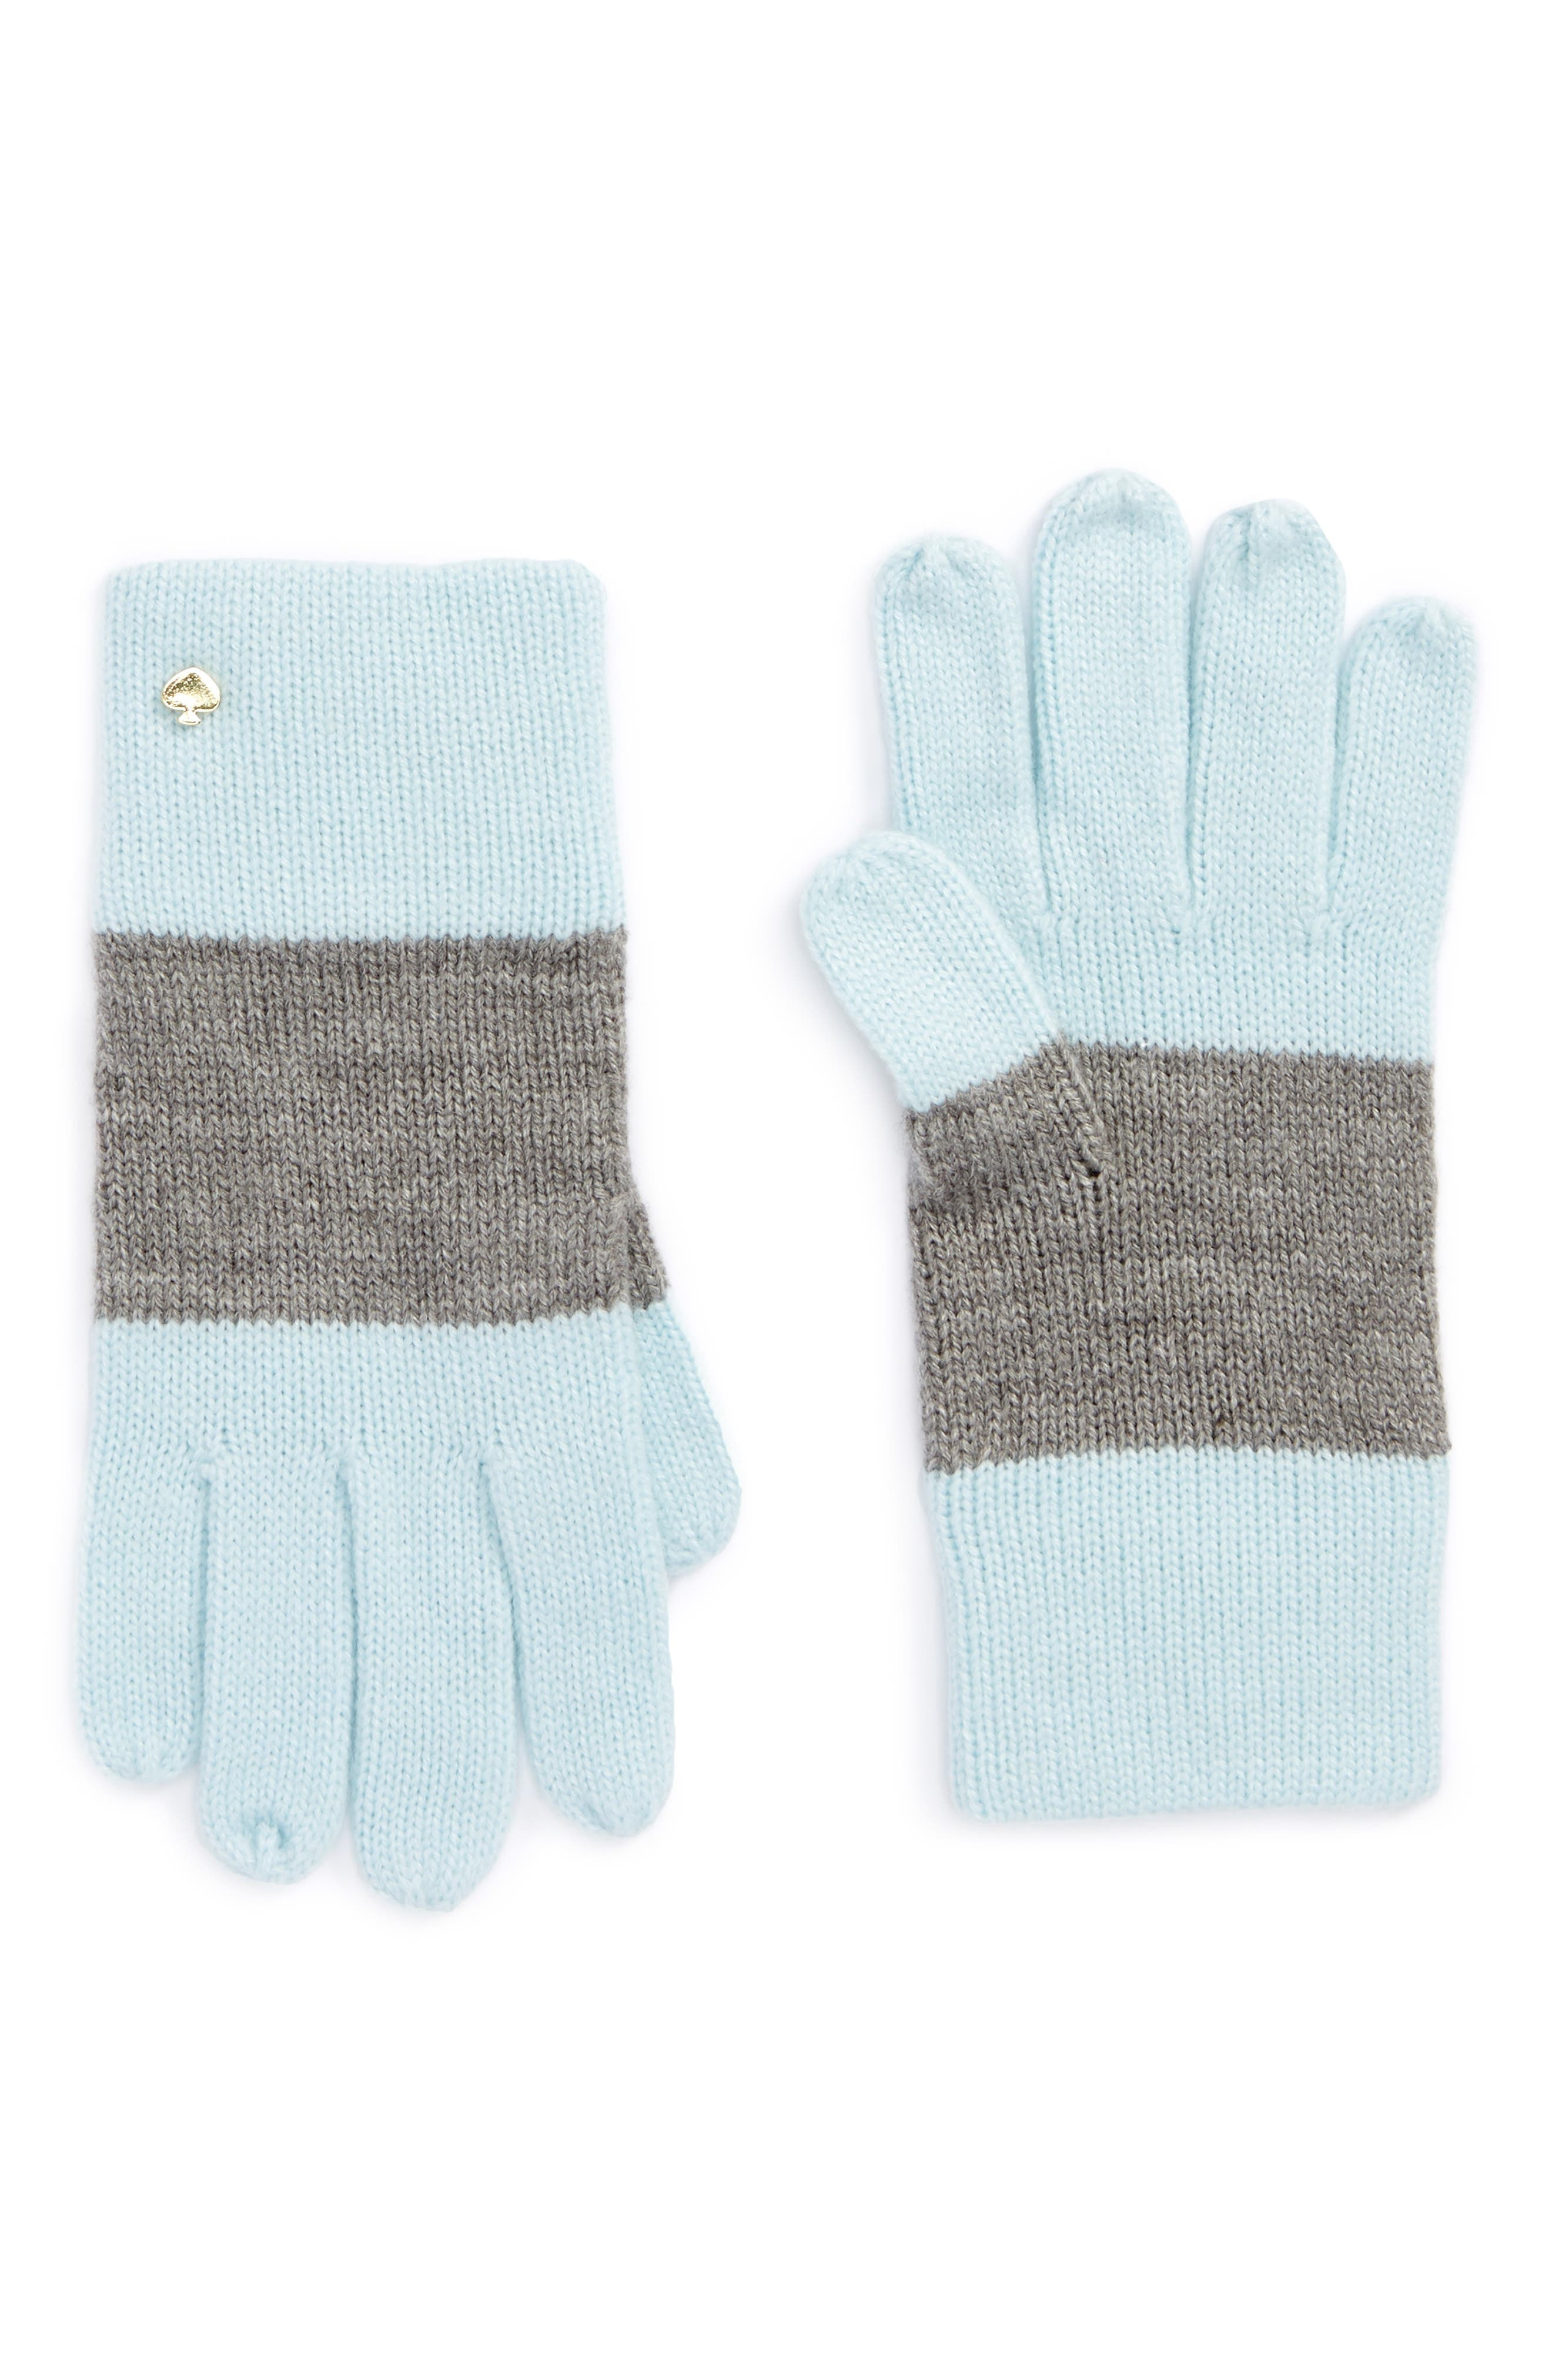 Main Image - kate spade new york colorblock knit gloves